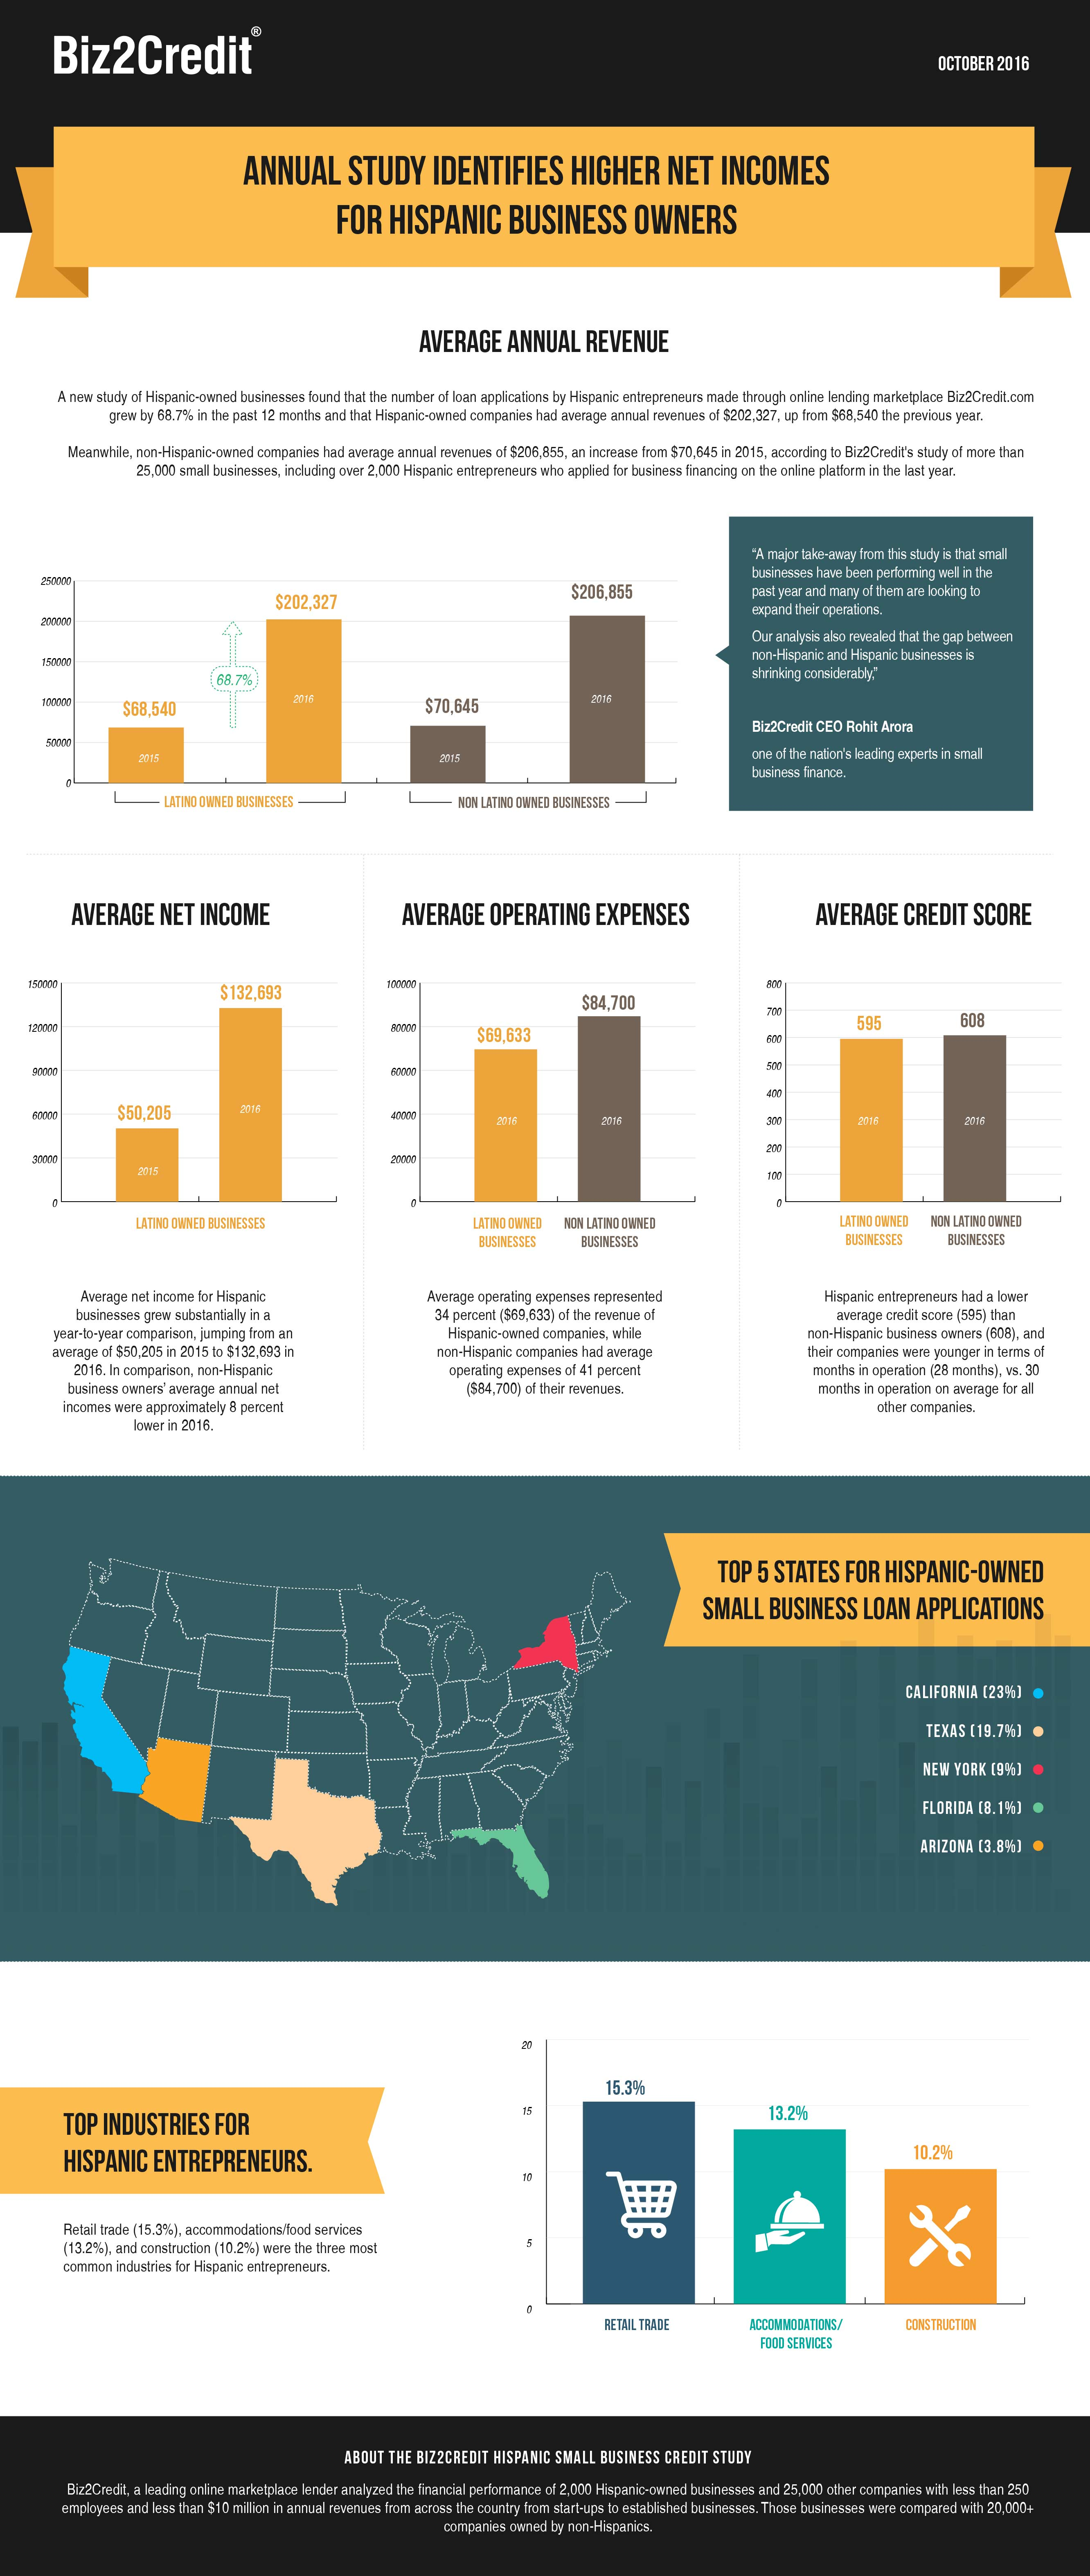 Info-graphic: Biz2Credit Annual Study Identifies Higher Net Incomes for Hispanic Business Owners